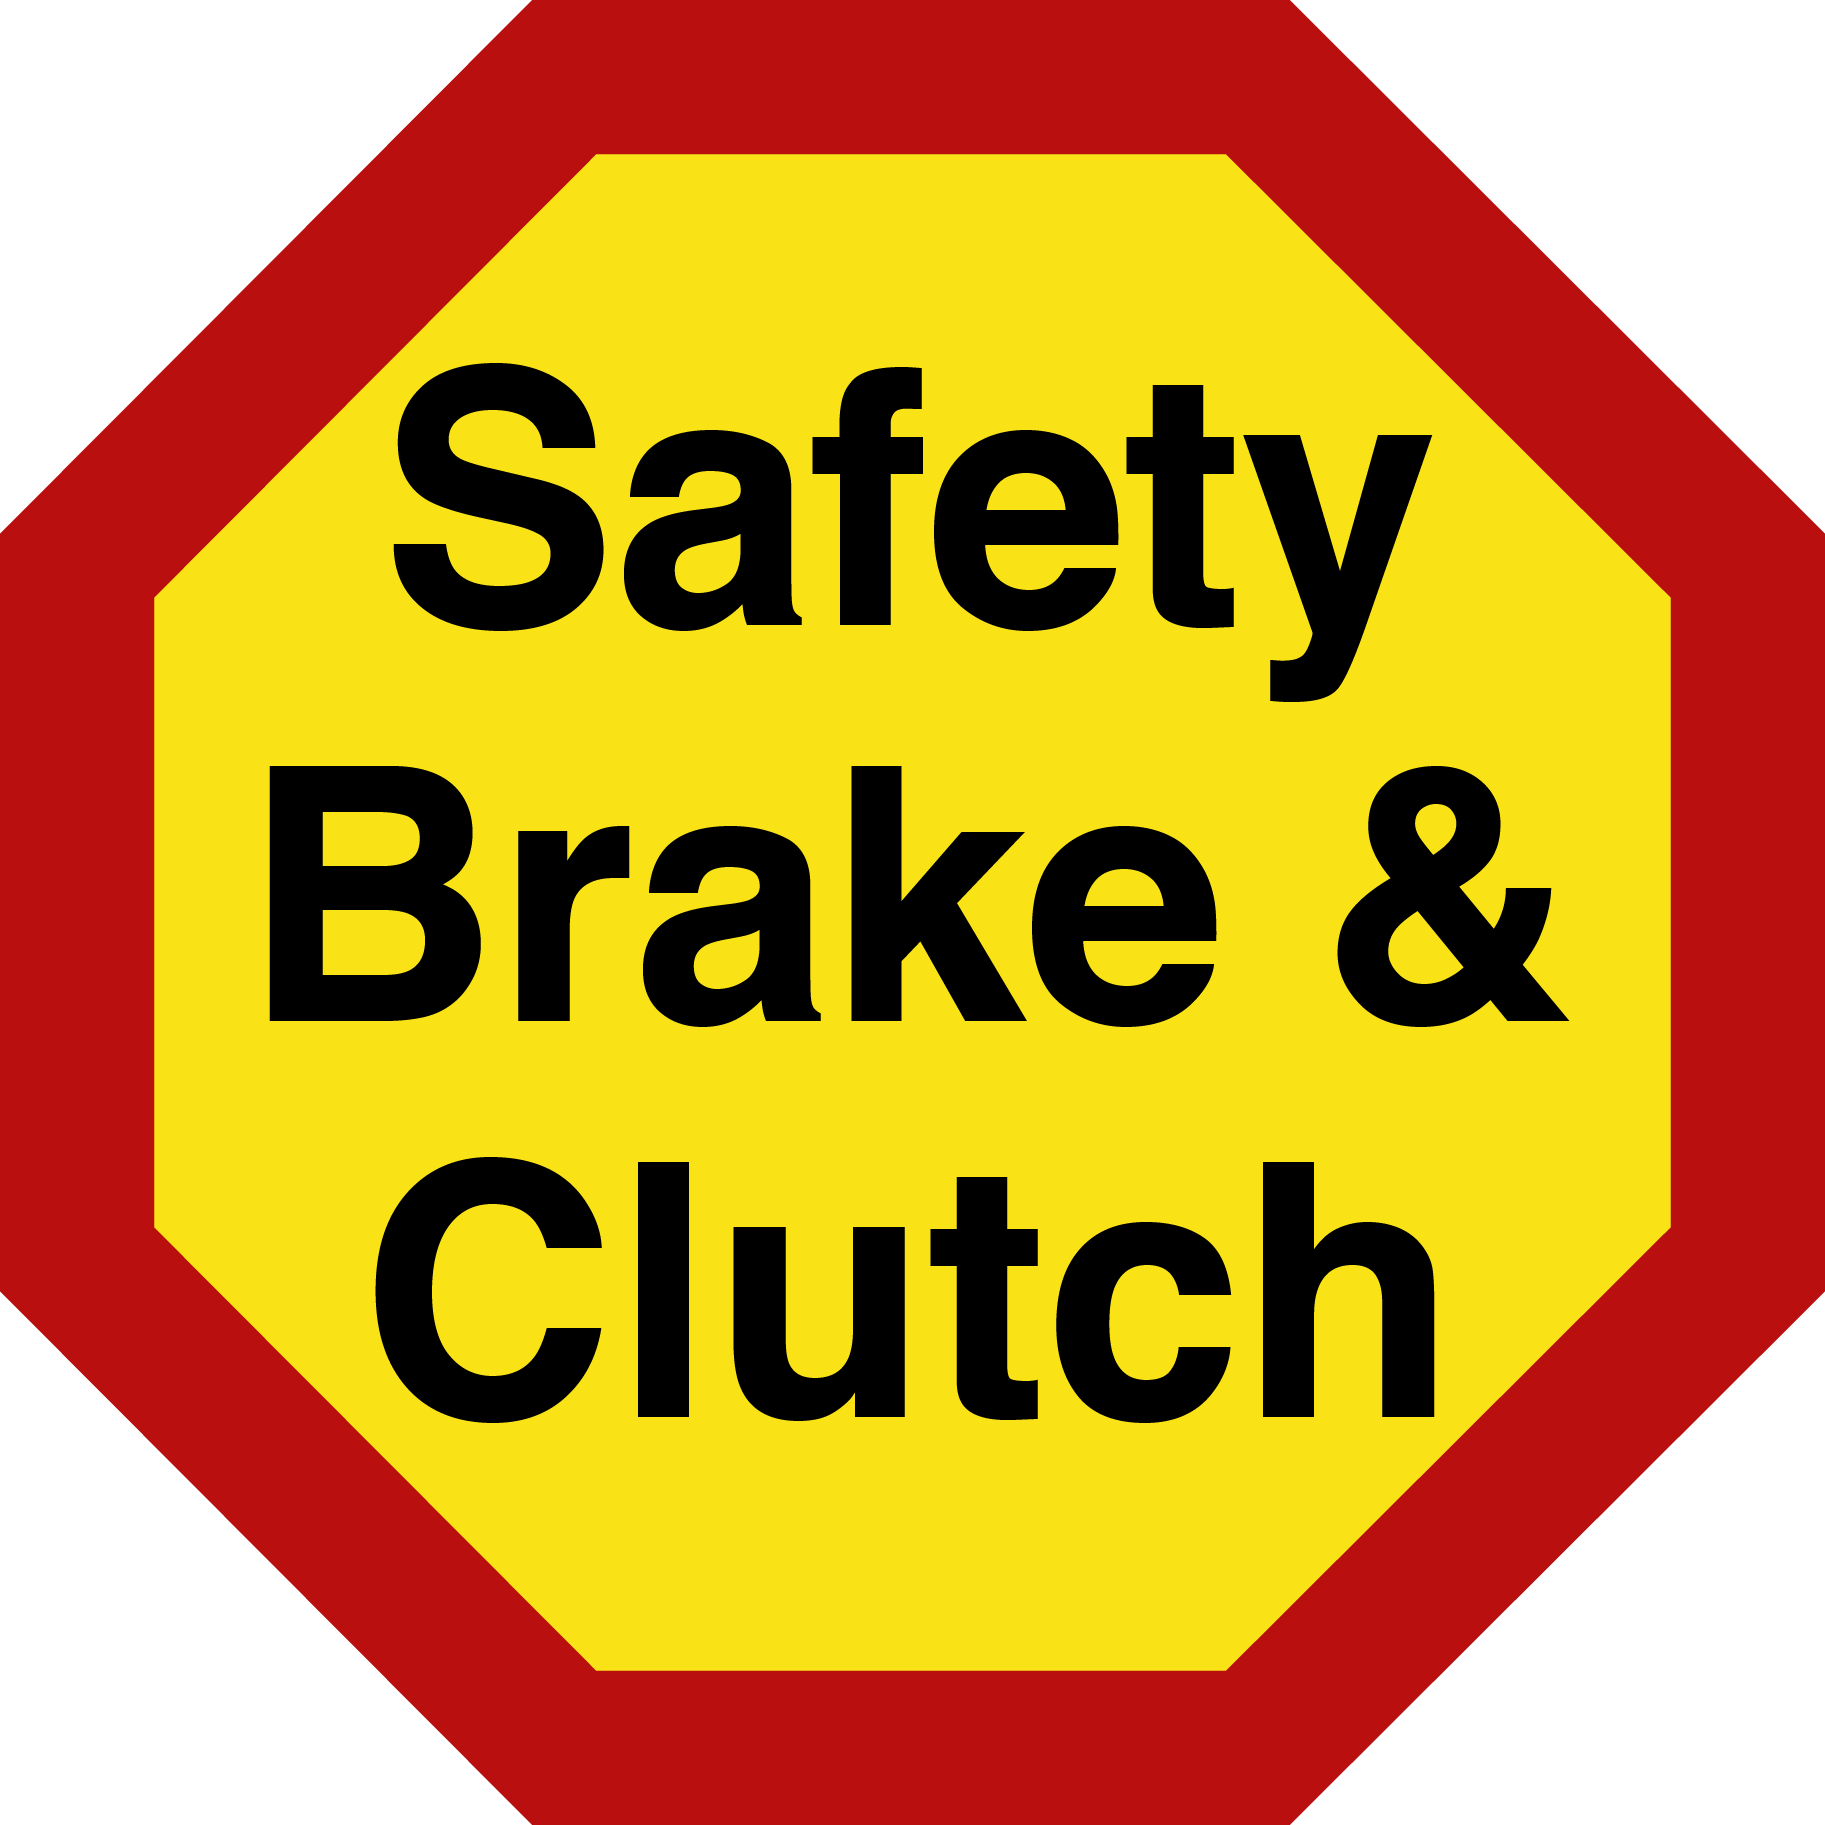 Safety Brake & Clutch Services South Africa